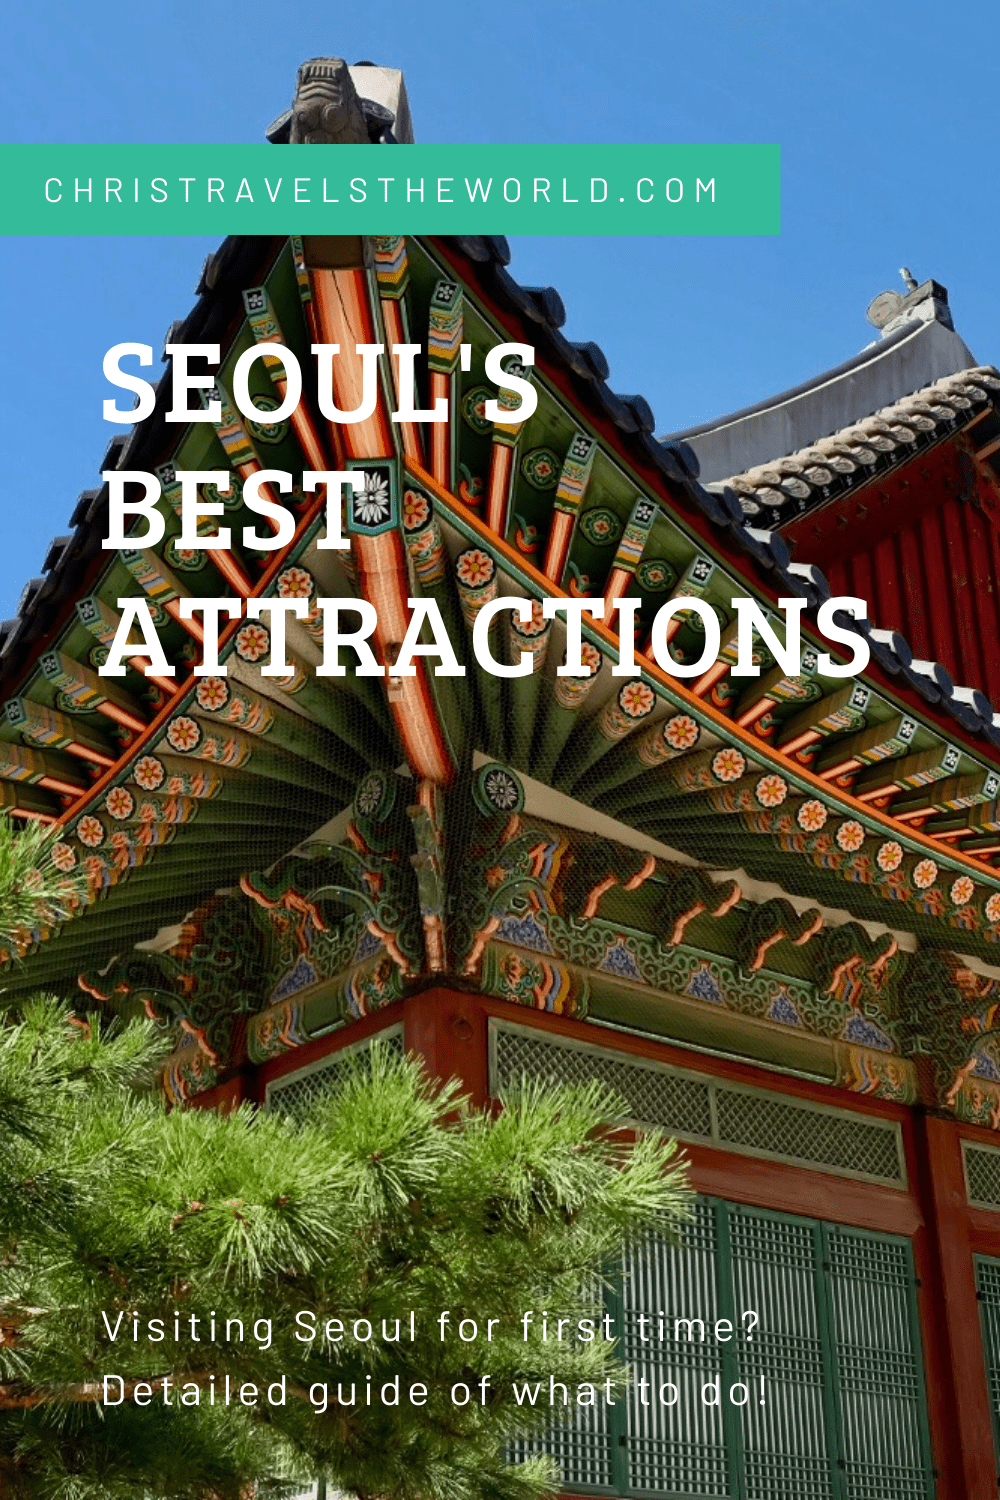 Seoul's Best Attractions